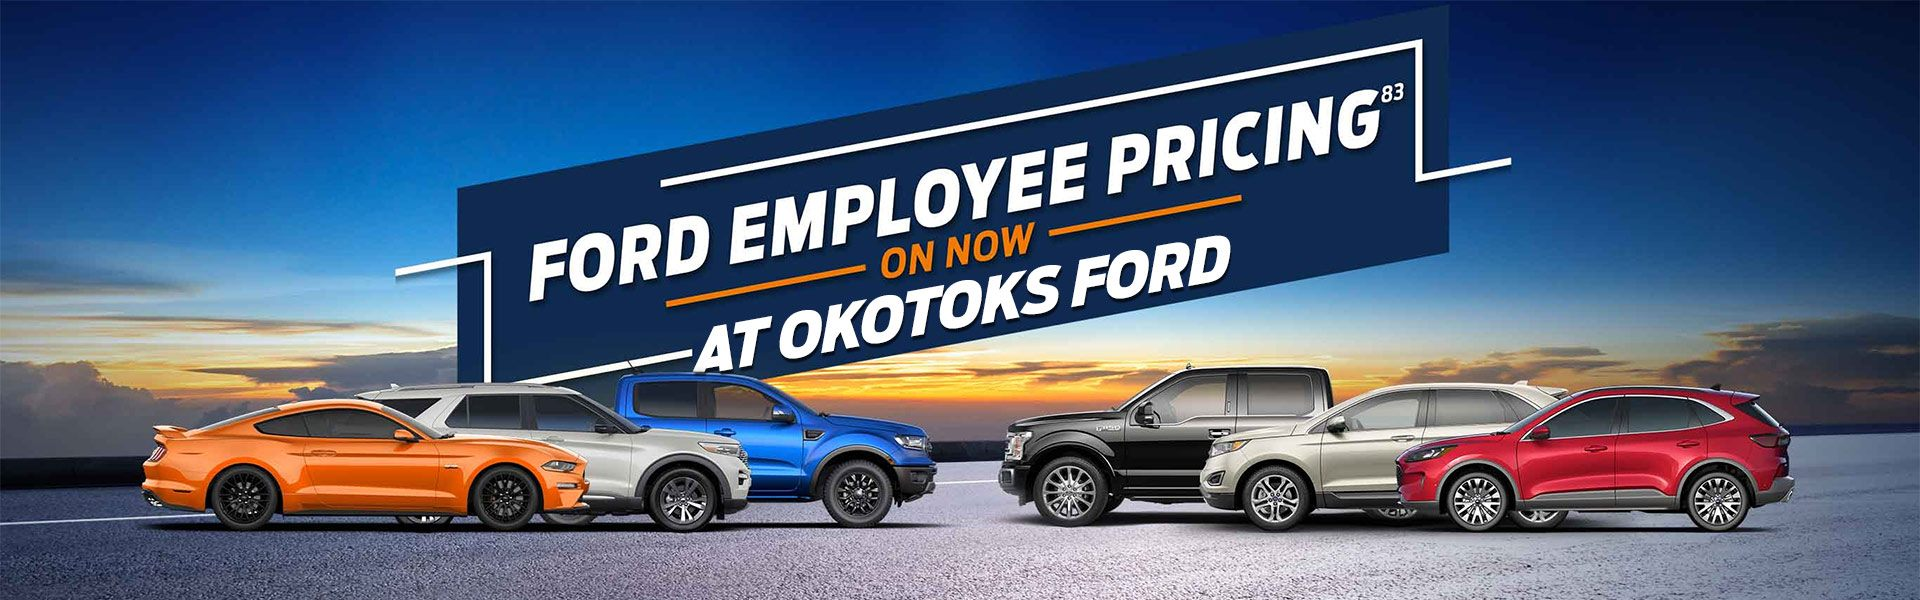 Employee Pricing now on at Okotoks Ford